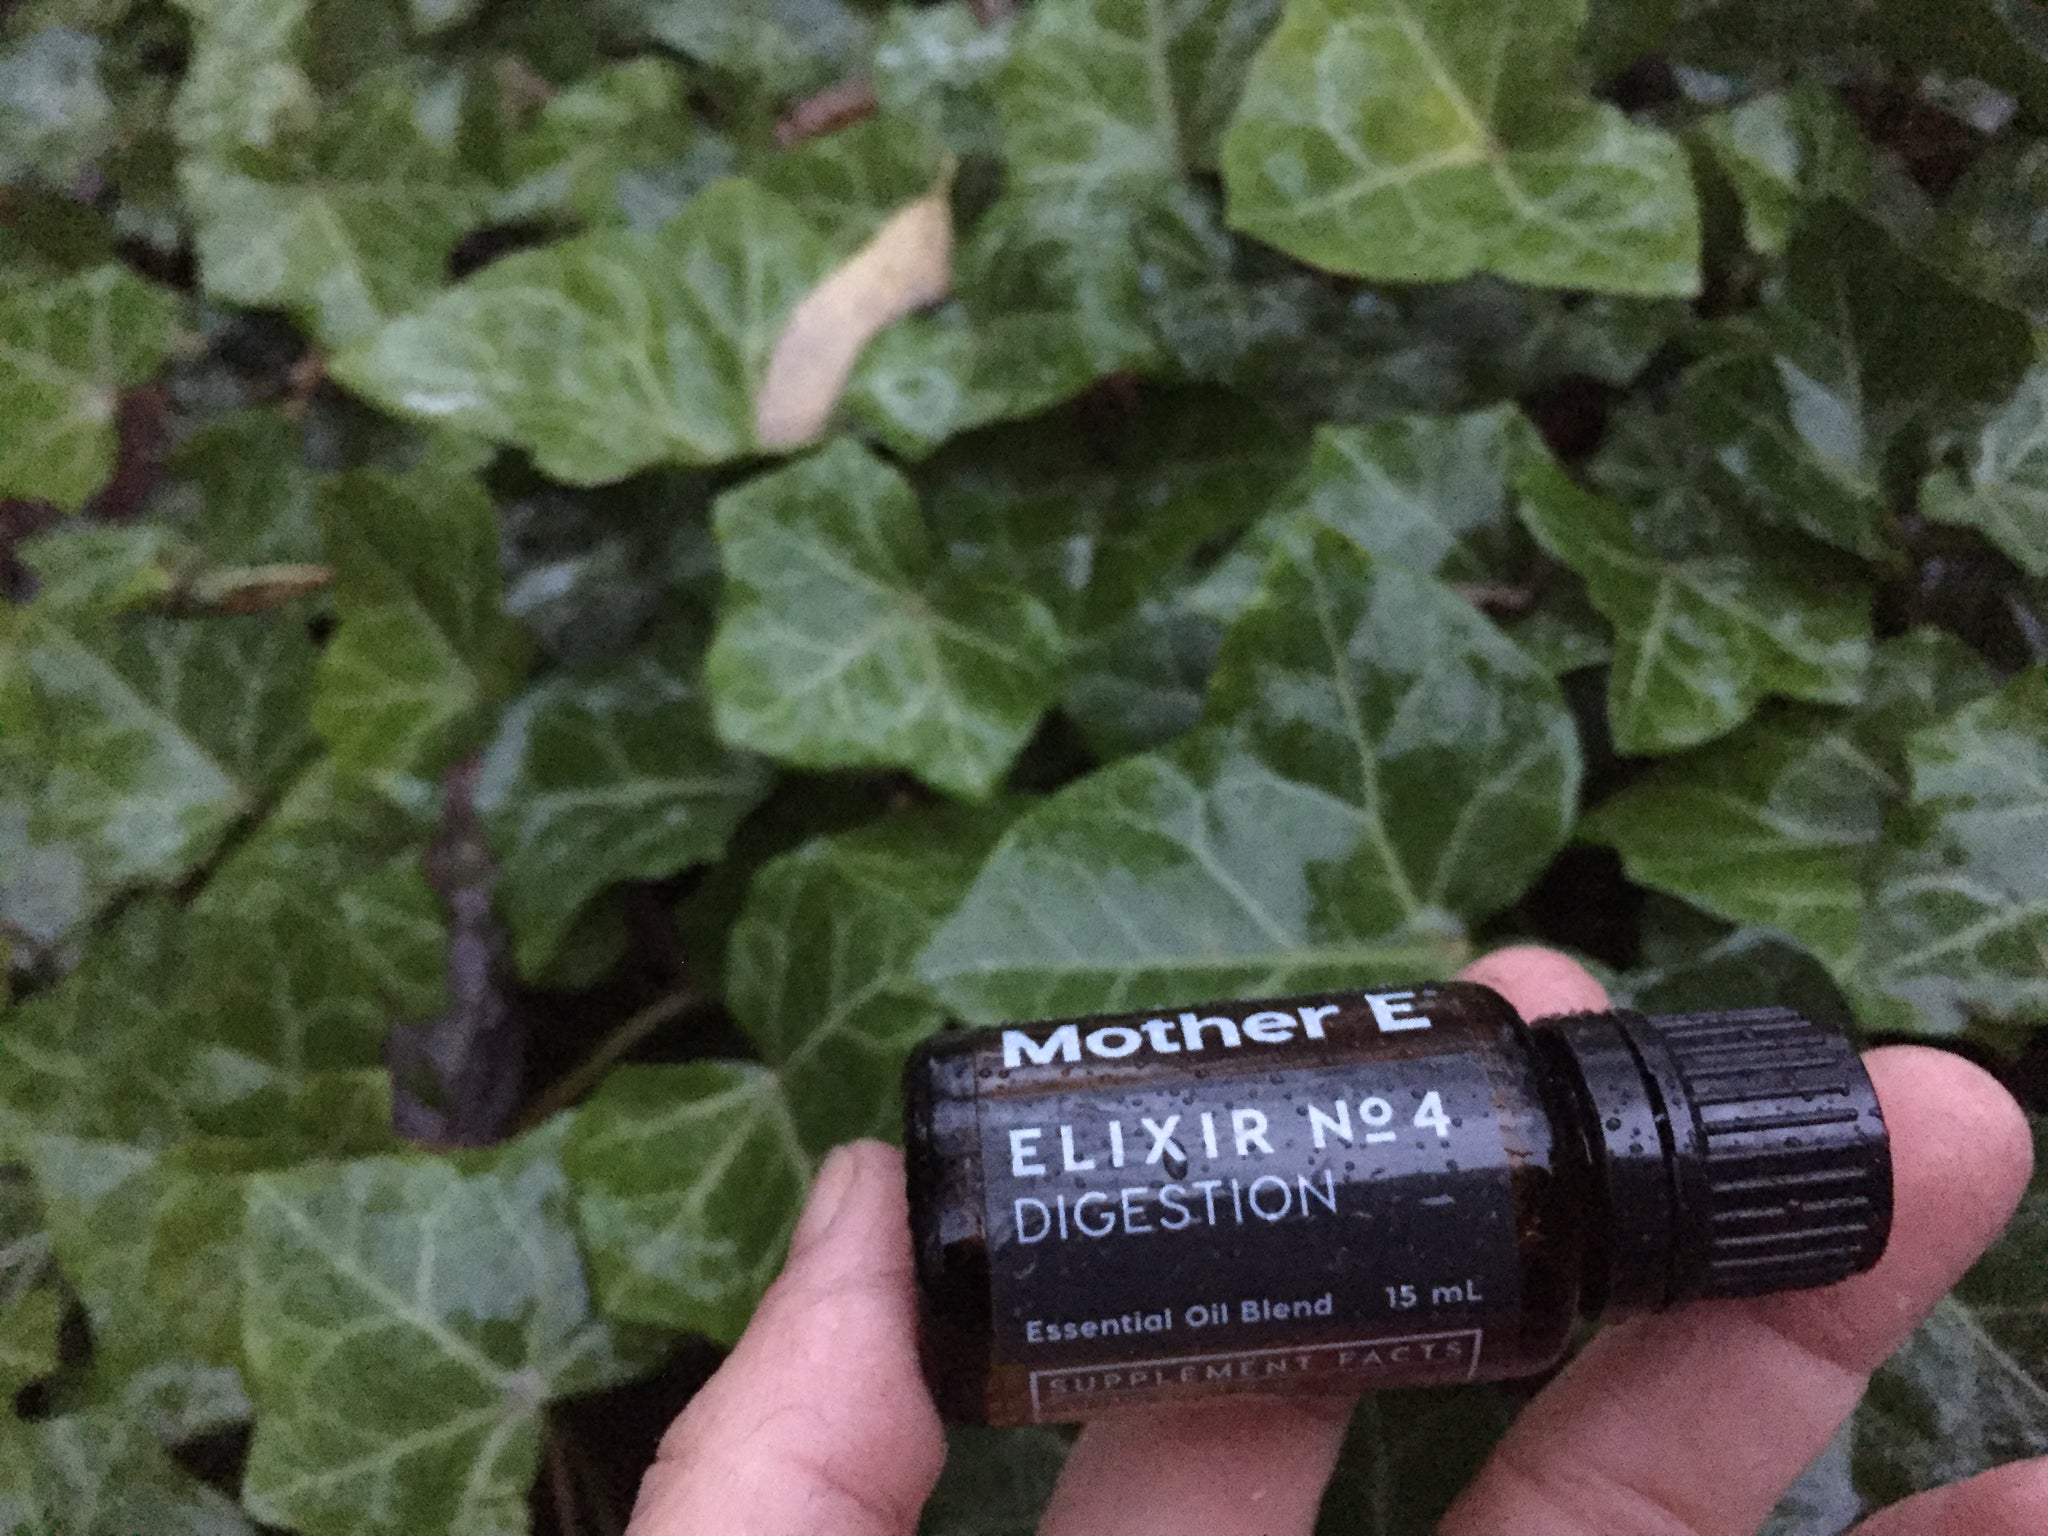 Elixir No 4 Digestion blend being held up in front of wet green vine leaves